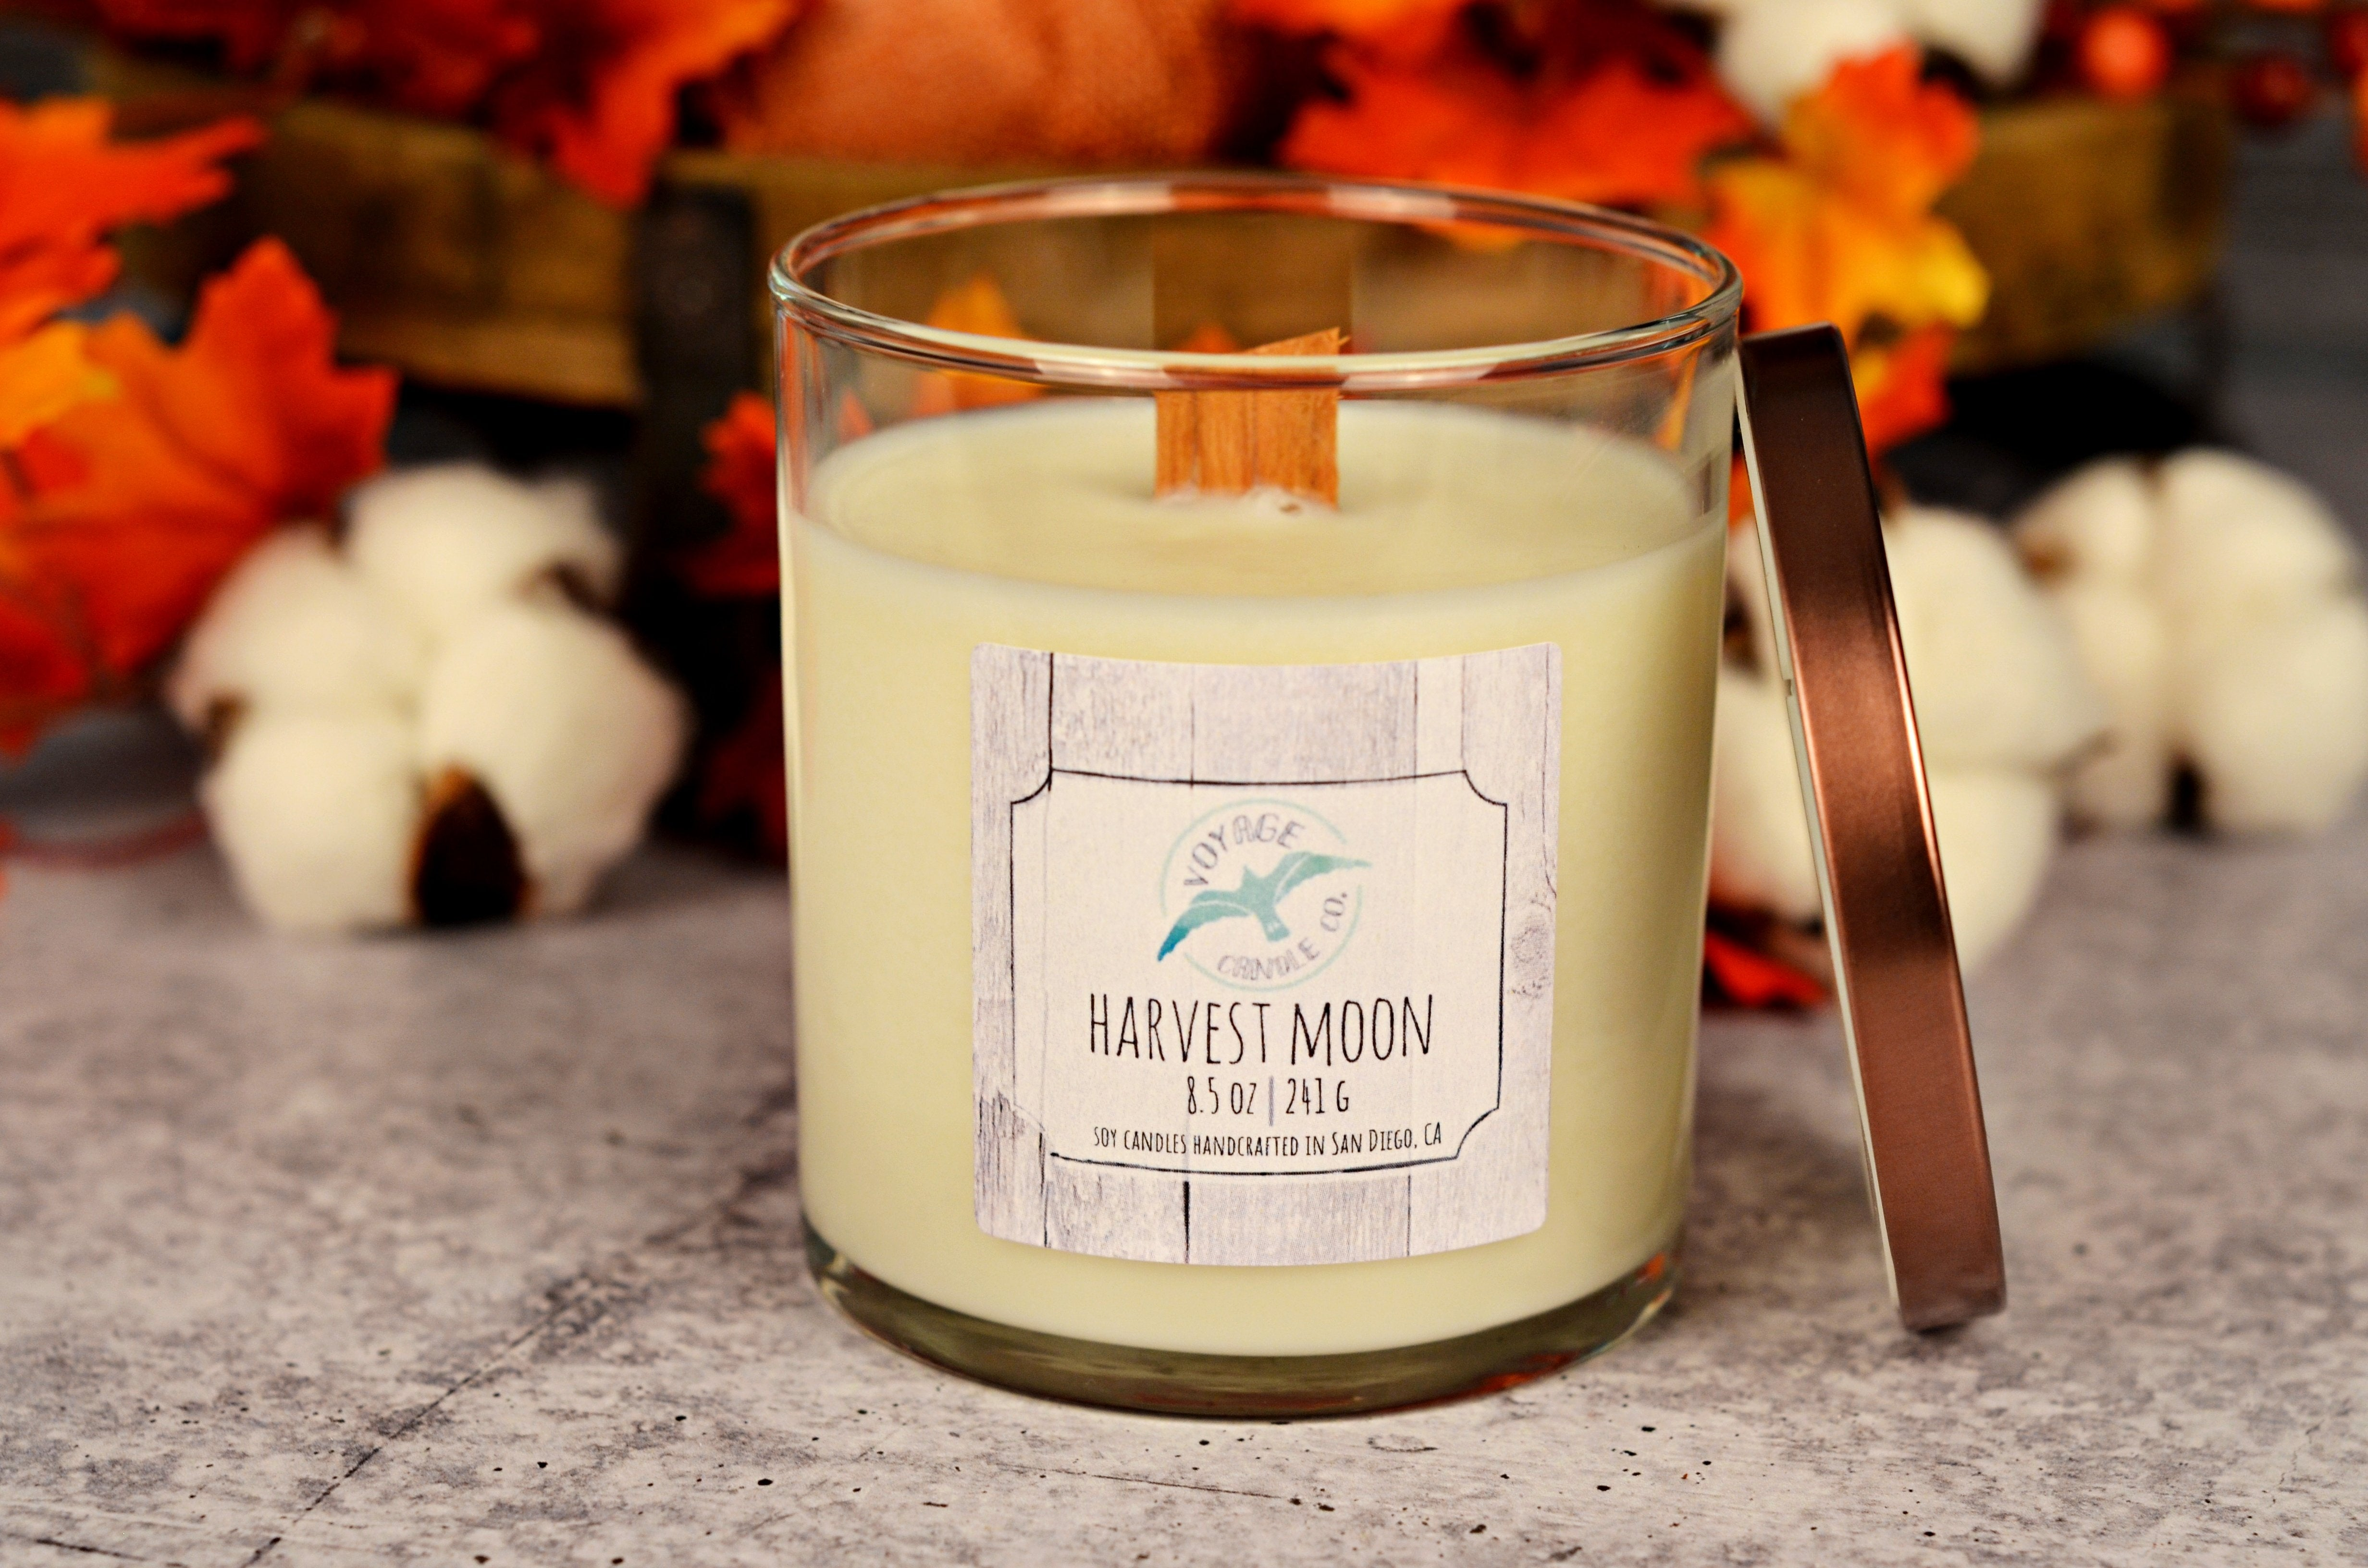 Harvest Moon - Wood Wick